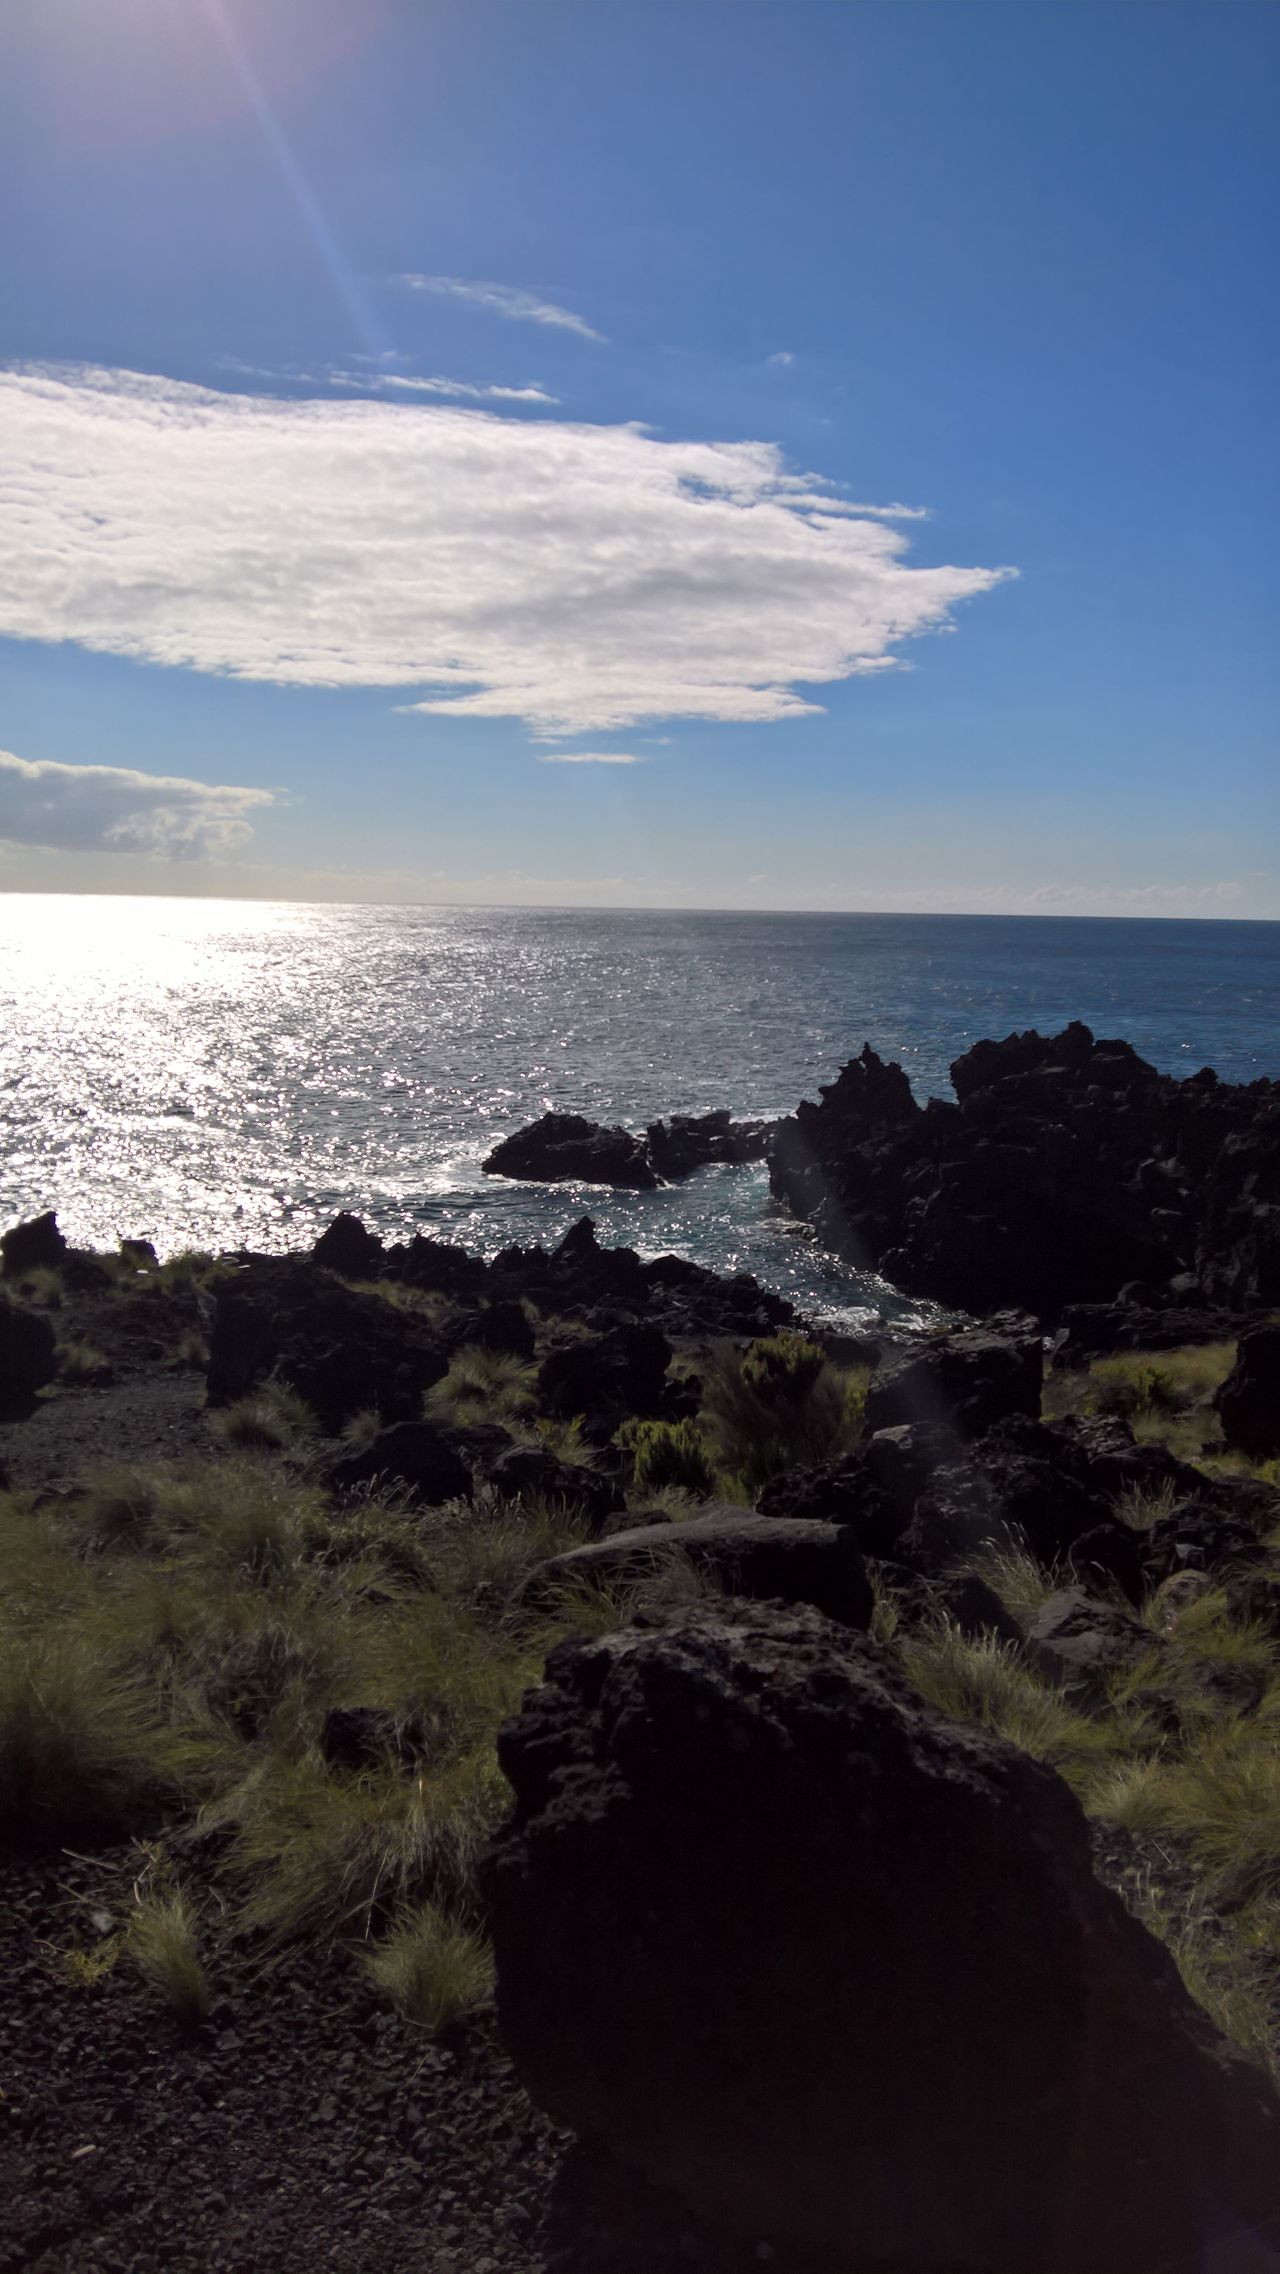 Sea Beach Sky Day Beauty In Nature Horizon Over Water Black Sand Beach Sao Miguel- Azores São Miguel - Açores Beauty In Nature Nature Azores Portugal Water Outdoors Beach Photography Nofilter My Year My View